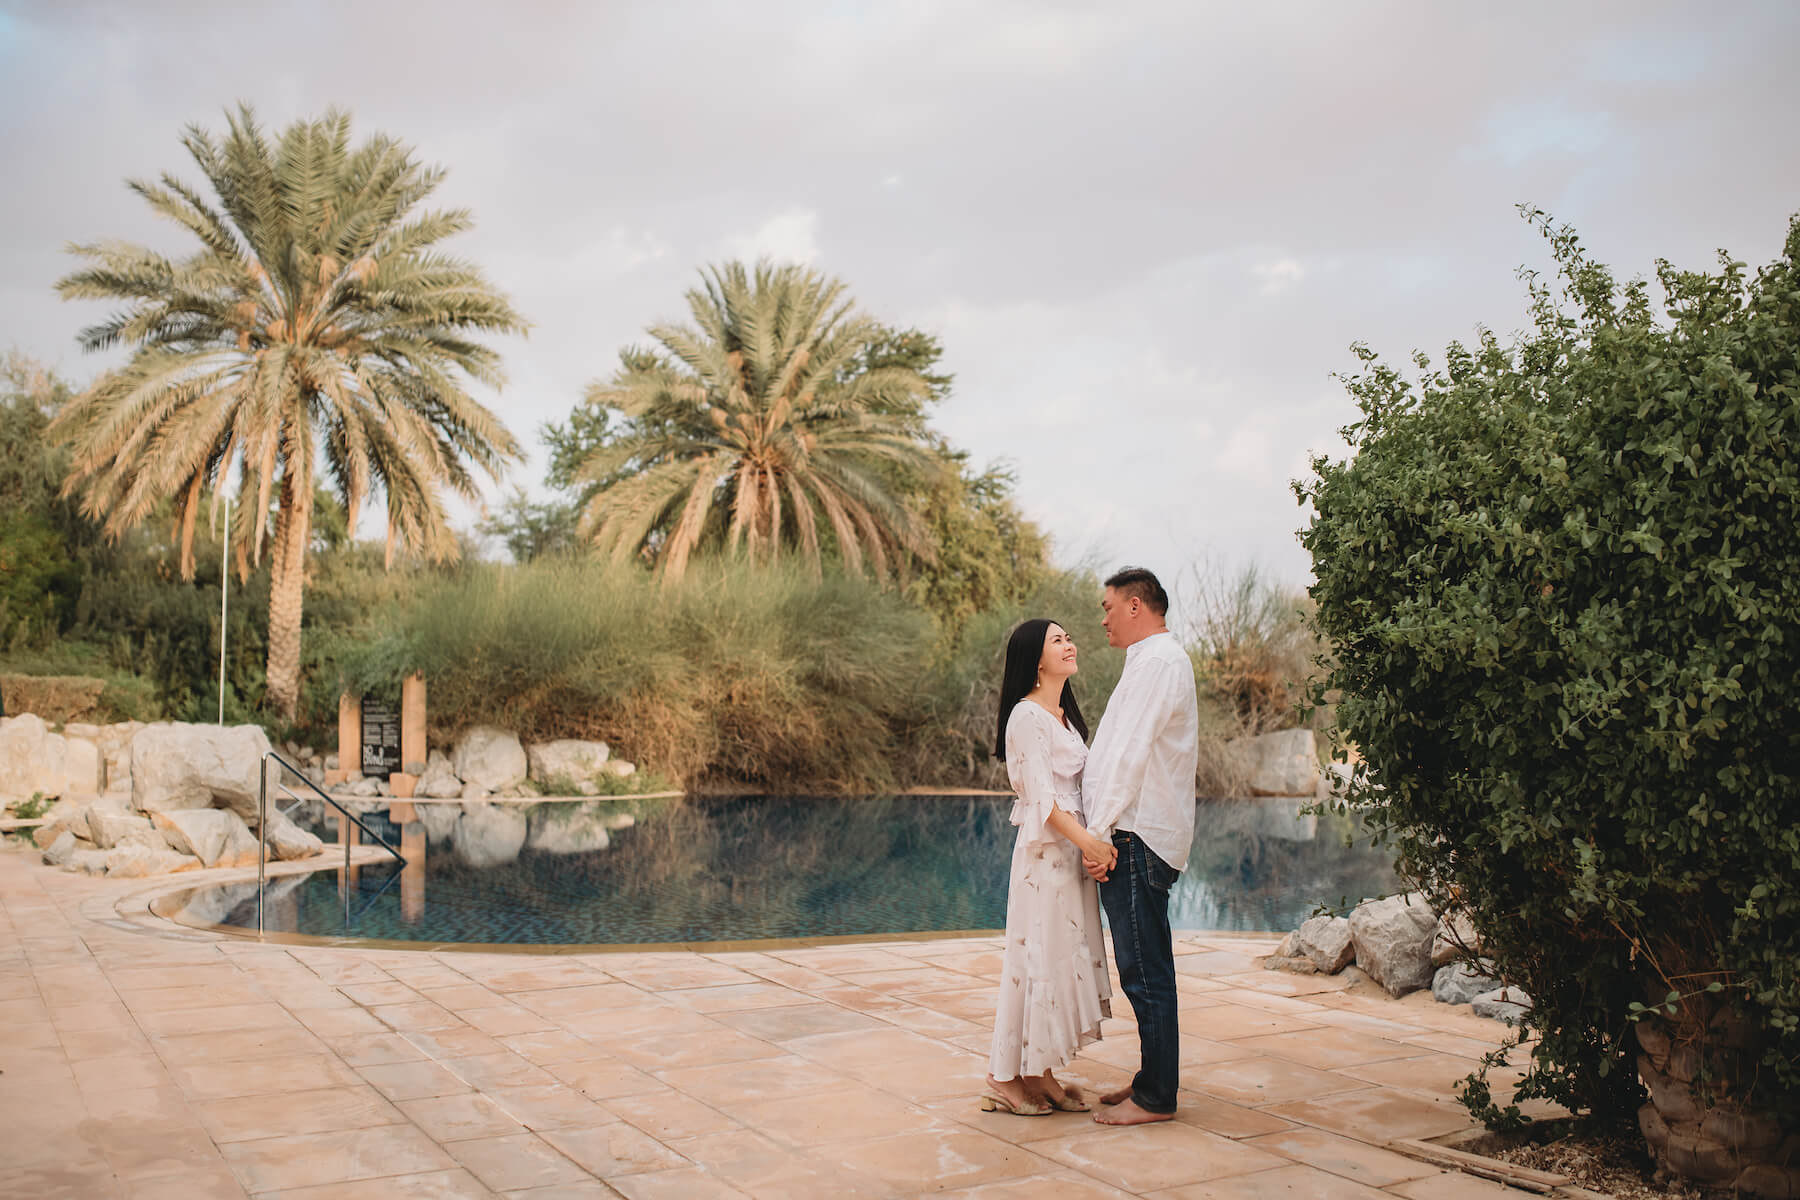 Asian couple hugging each other and laughing on a couples trip to Dubai, United Arab Emirates